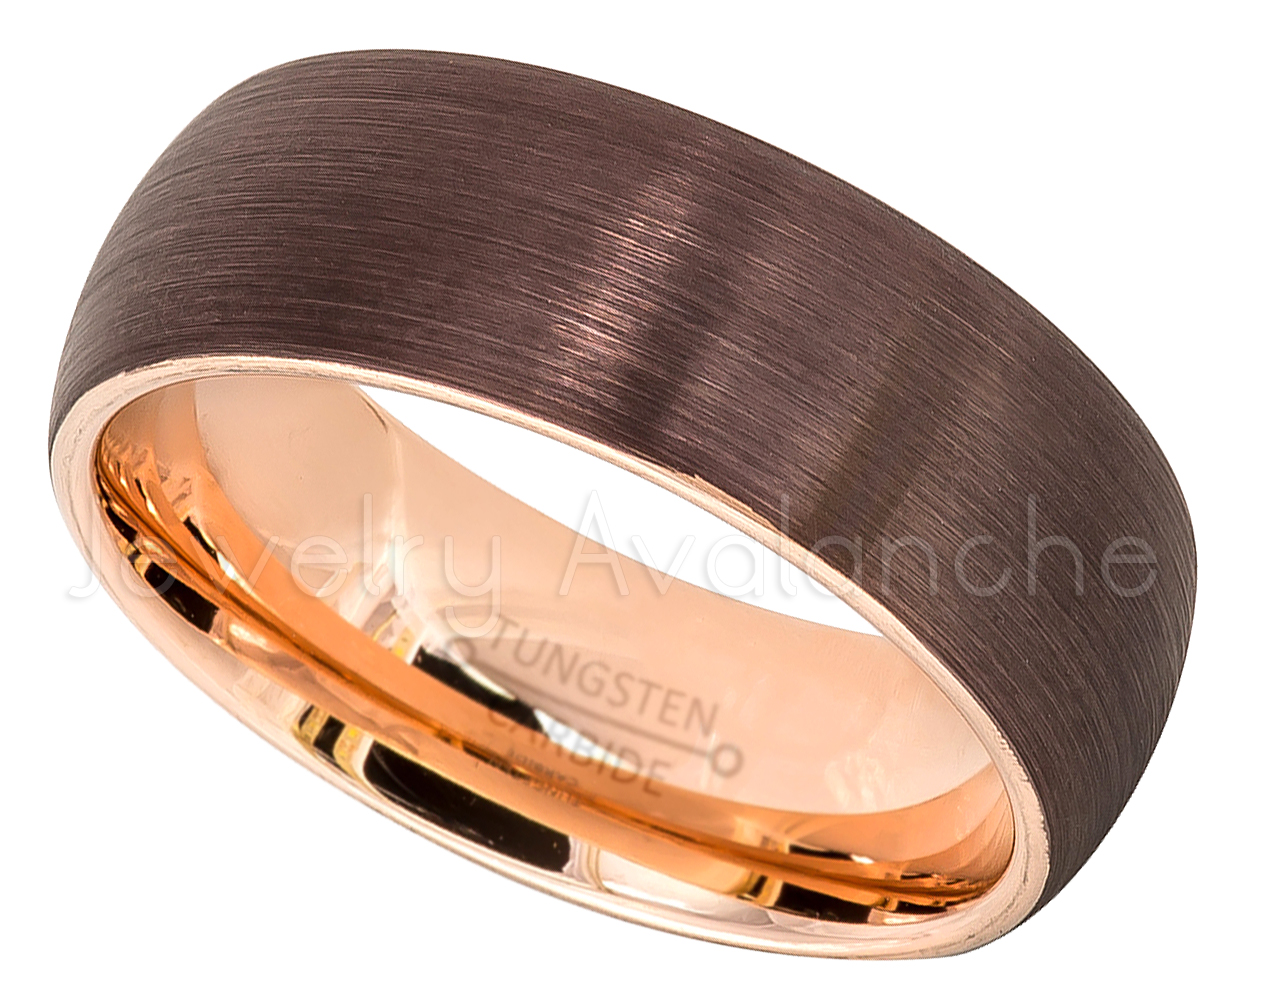 This is an image of 42-Tone Dome Tungsten Wedding Band - 42mm Brushed Finish Brown IP & Rose Gold Plated Inner Comfort Fit Tungsten Carbide Ring, Tungsten Anniversary Band